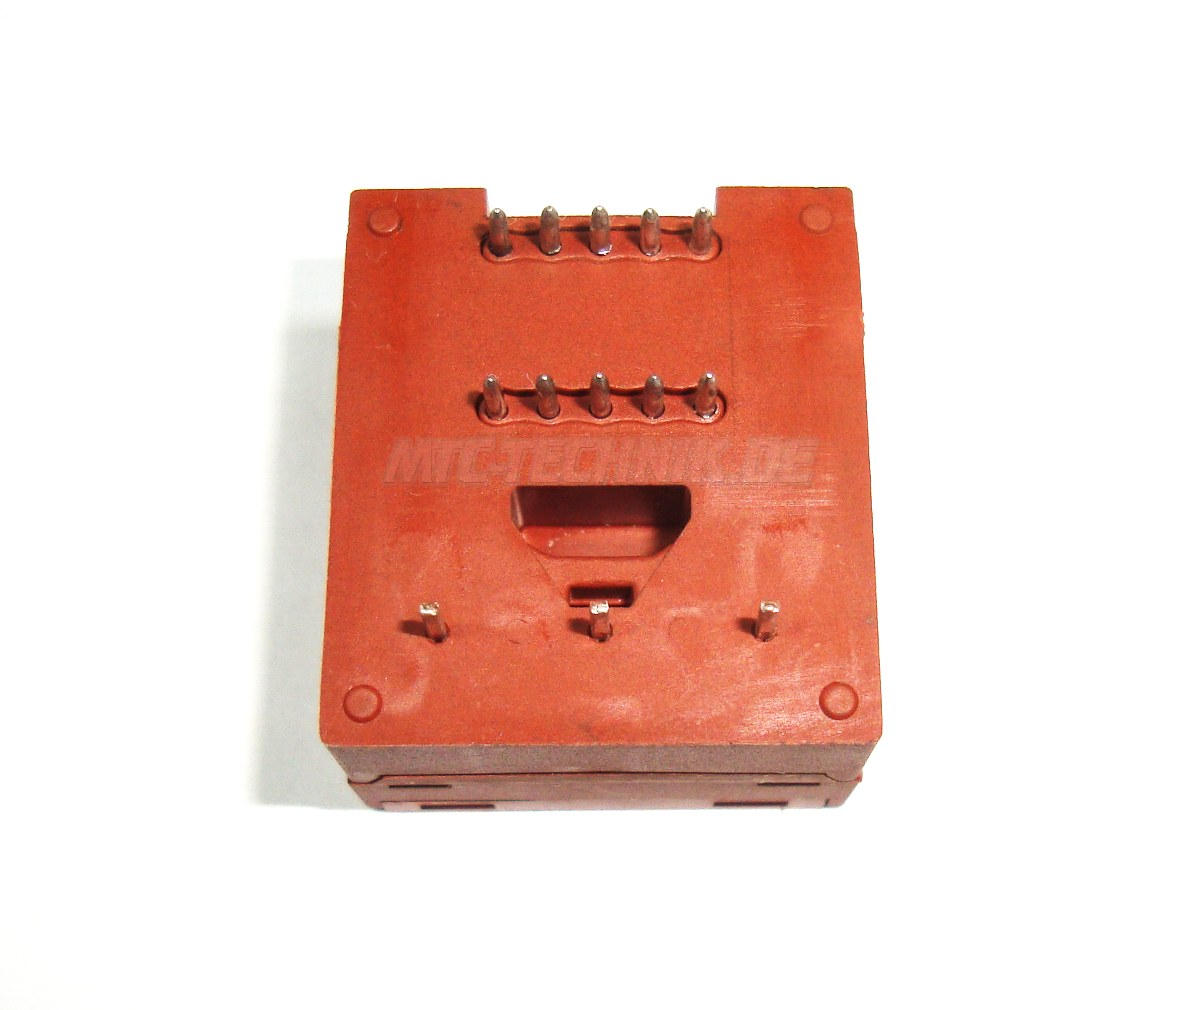 2 Vac Current Transformer 4644x302 Order Online